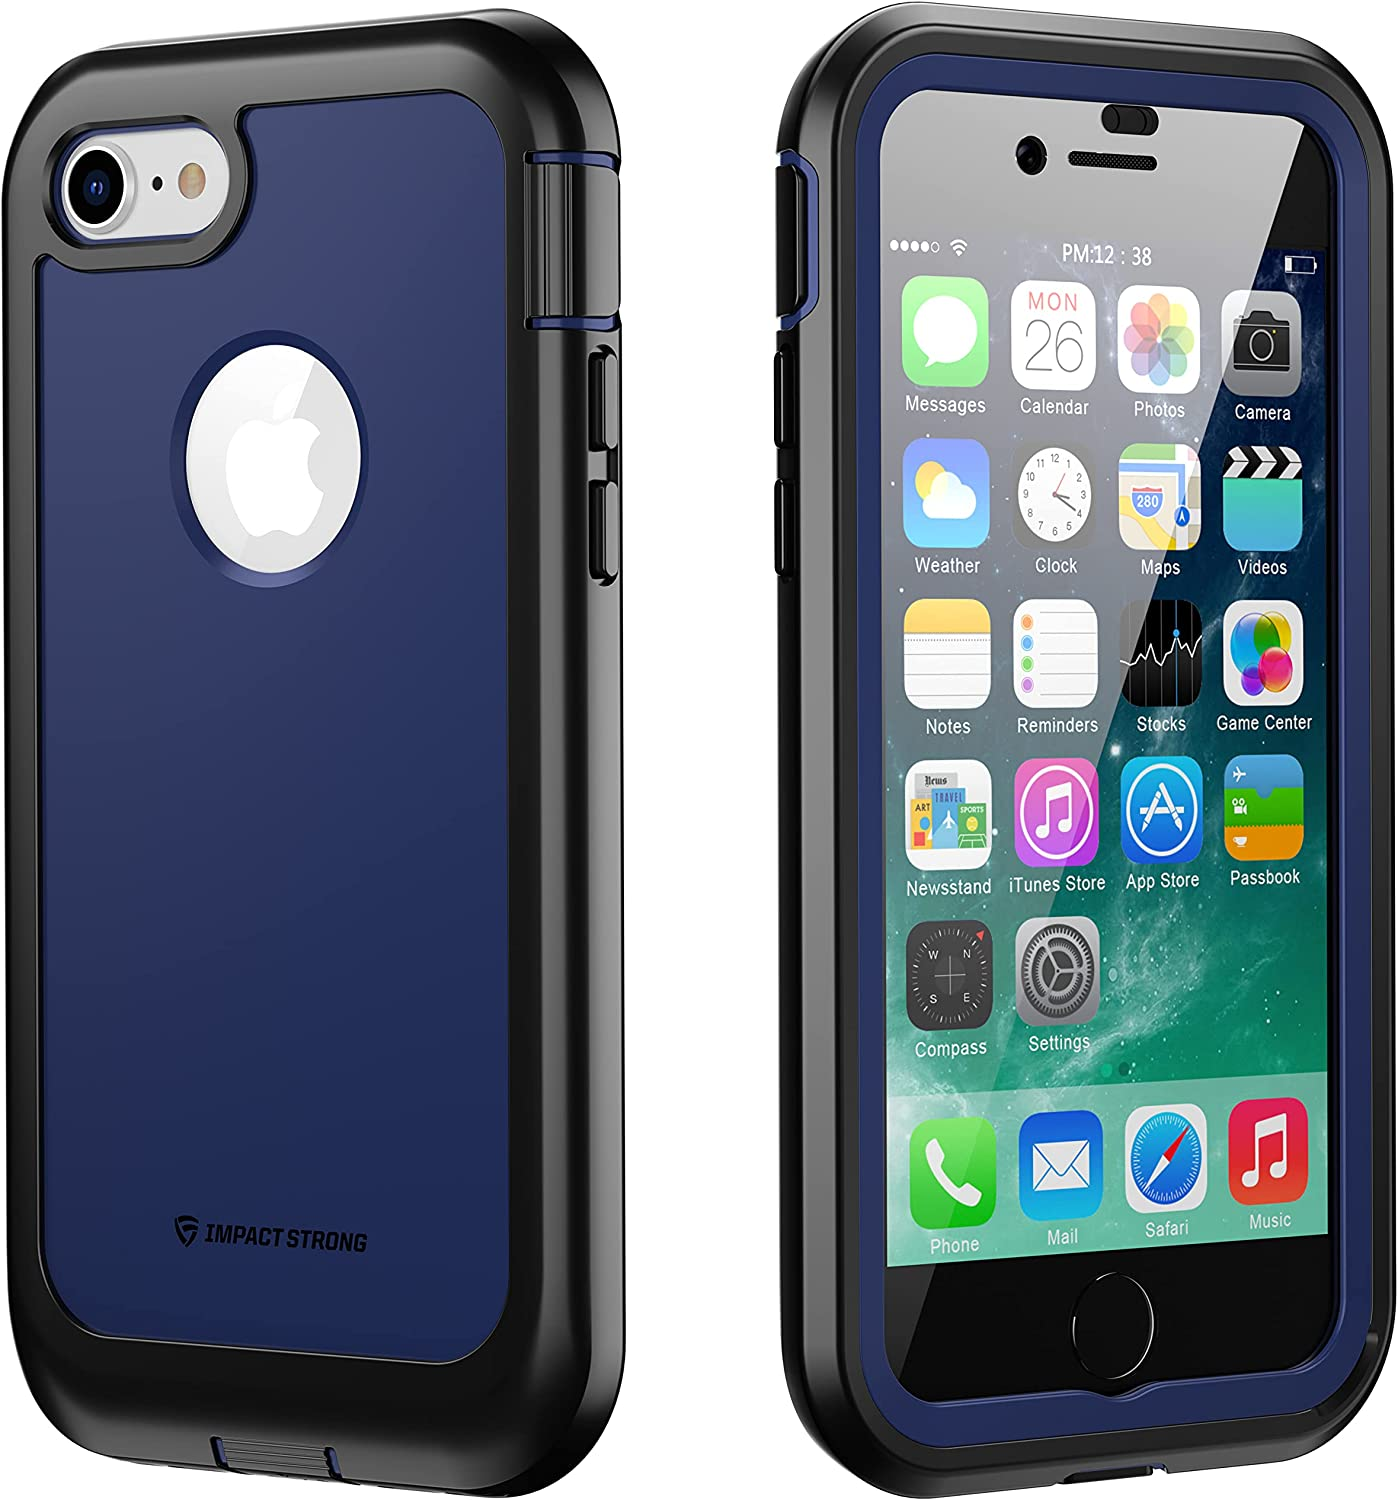 iPhone 7/8 Case, ImpactStrong Ultra Protective Case with Built-in Clear Screen Protector Full Body Cover for iPhone 7 2016 /iPhone 8 2017 (Navy Blue)